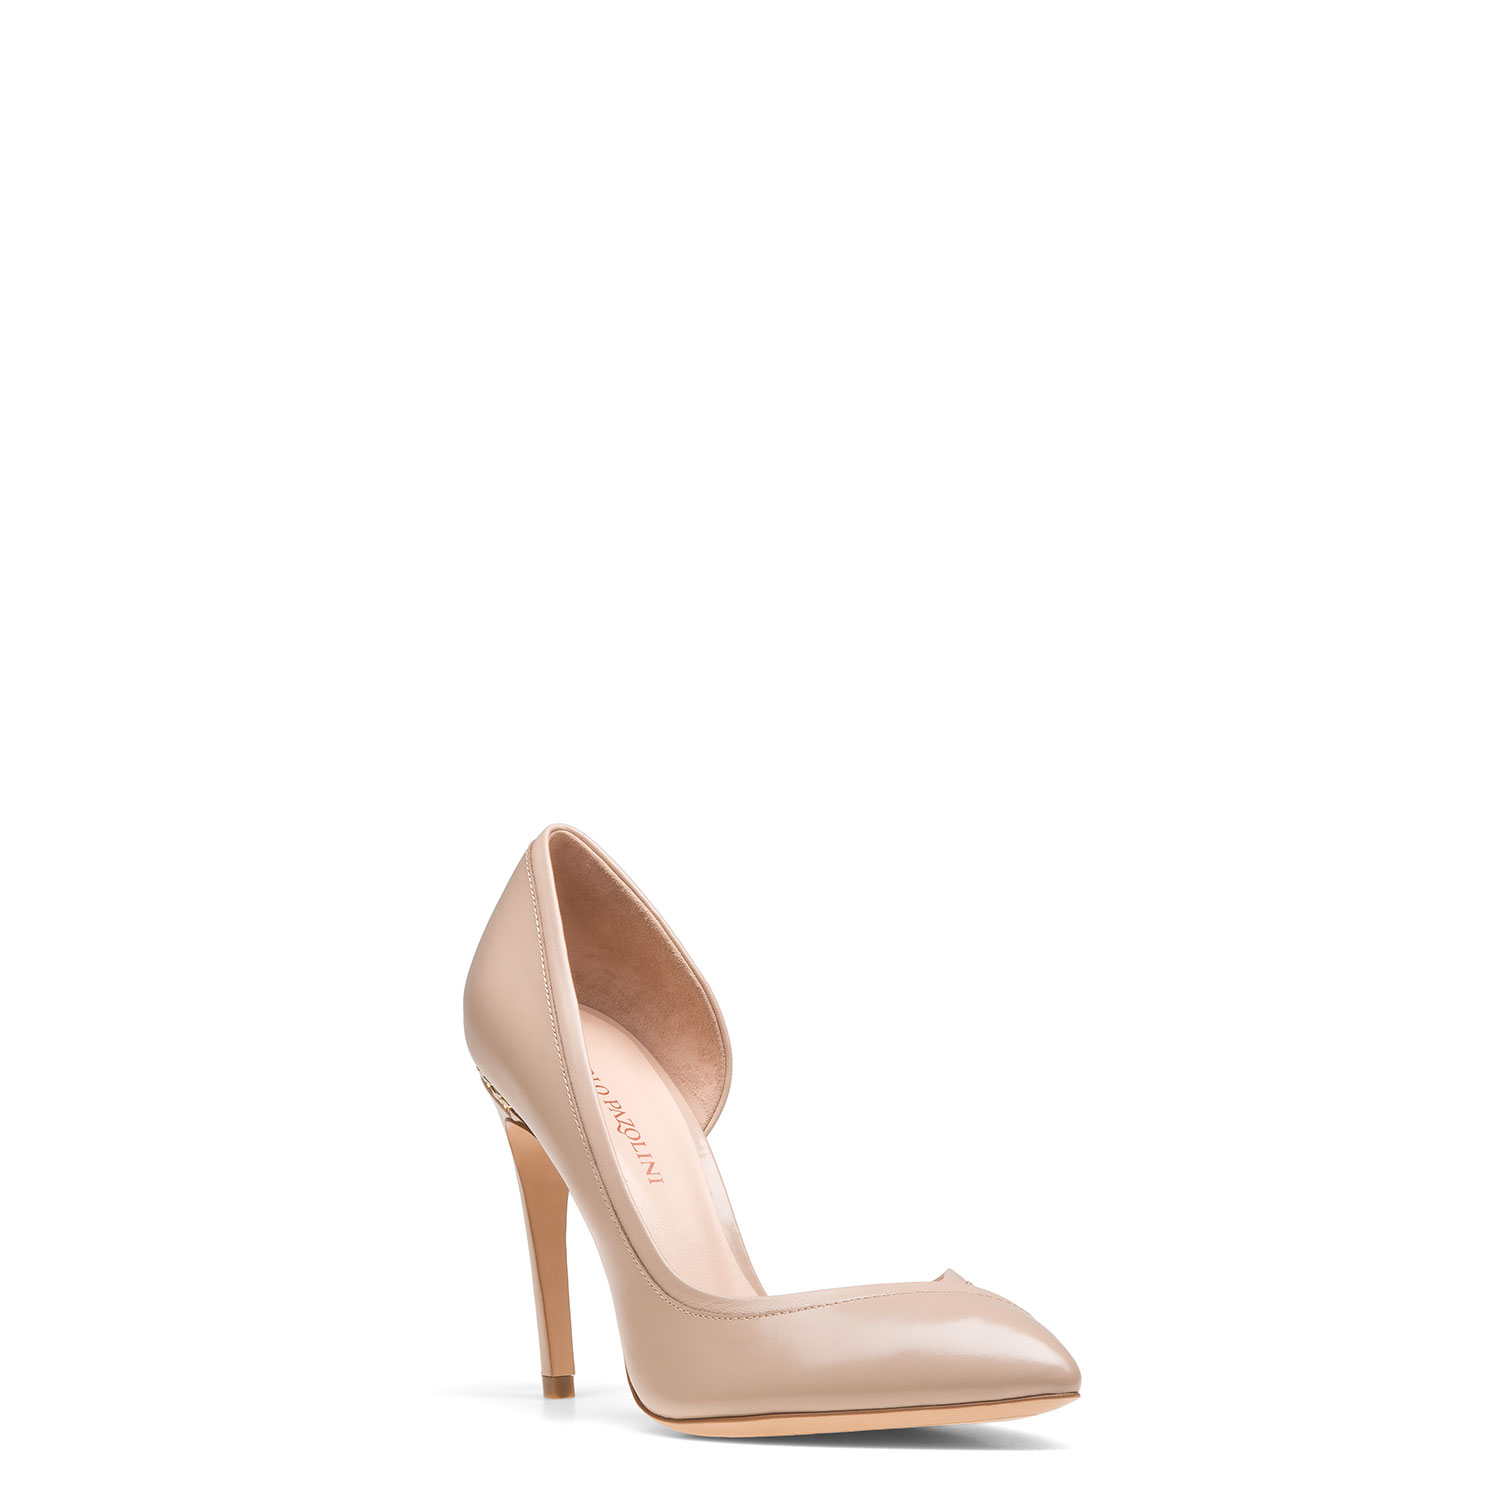 Women's shoes CARLO PAZOLINI FL-REN8-3